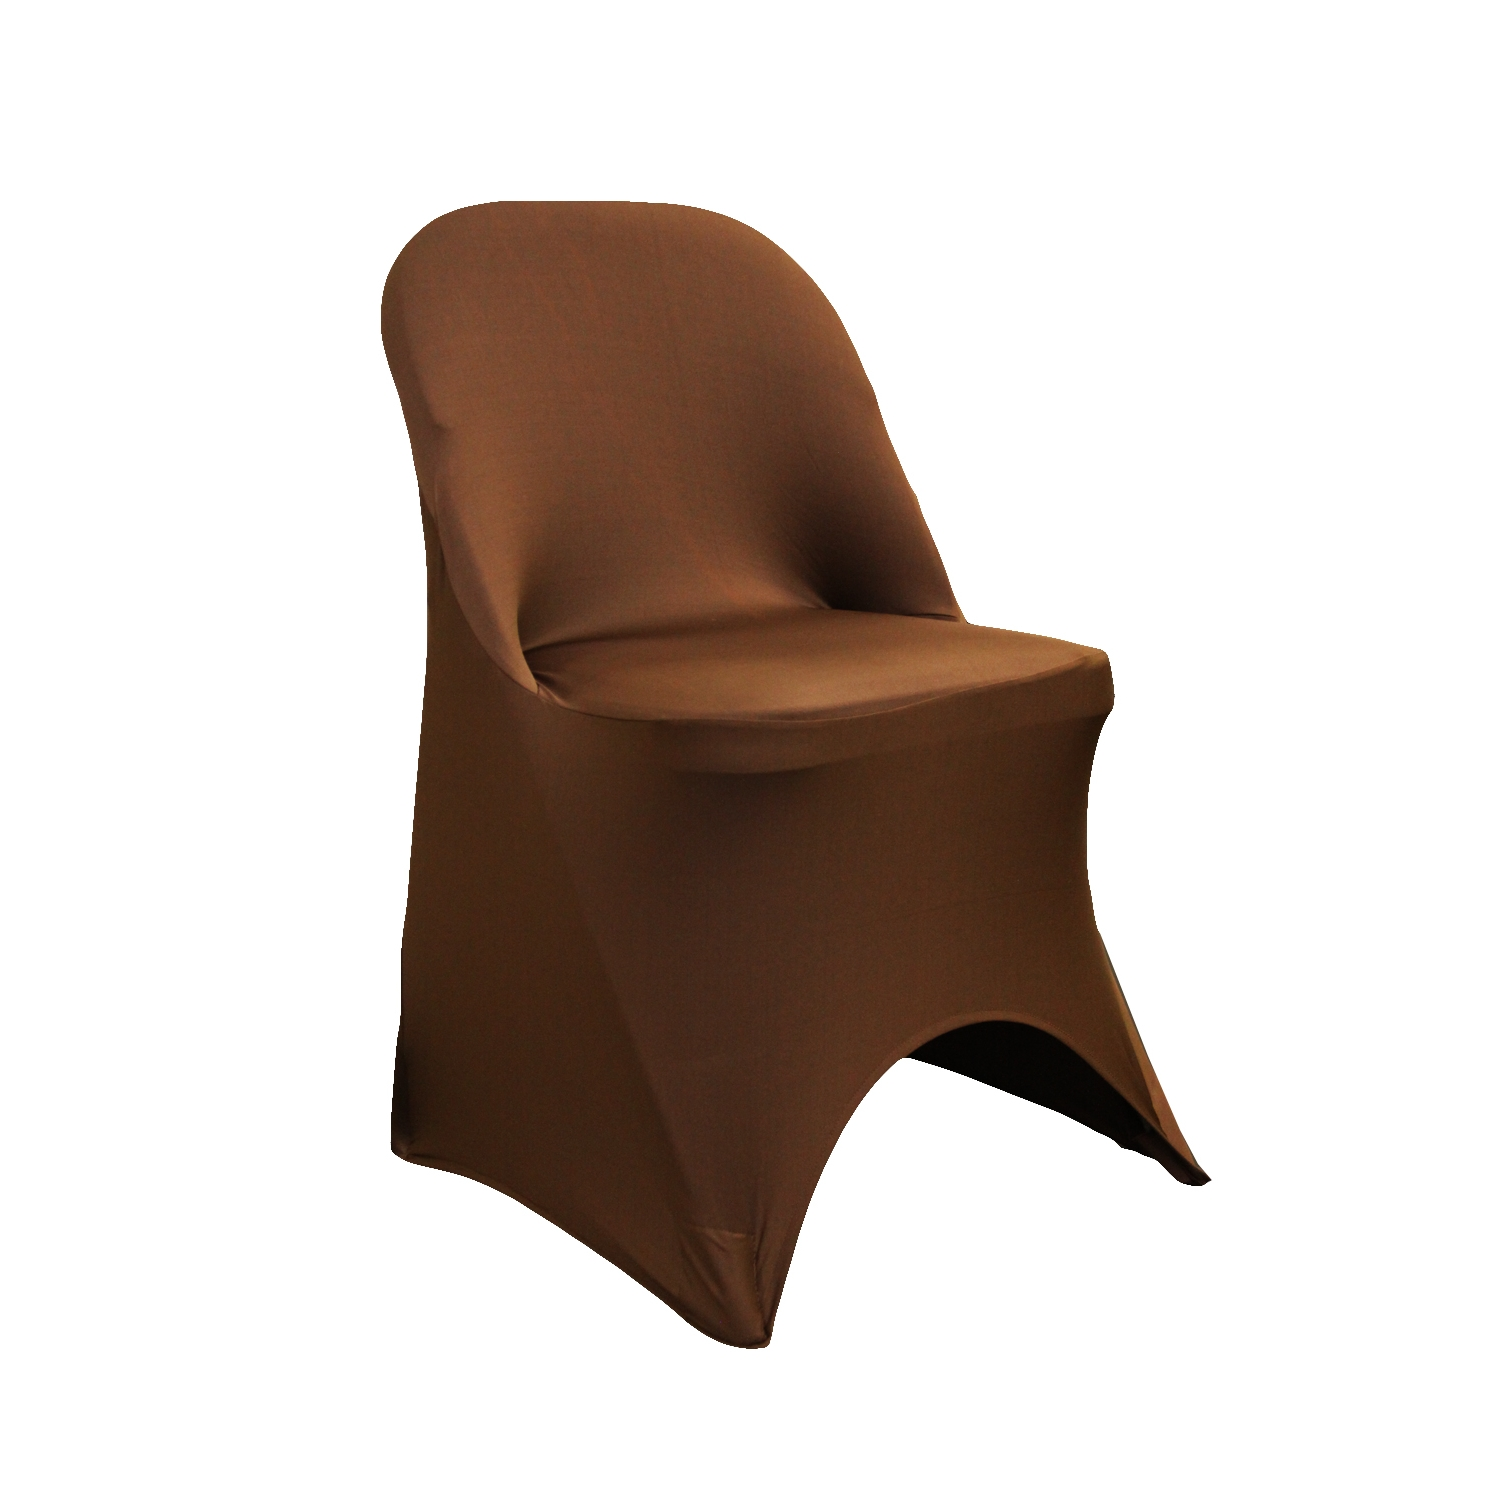 Chair Cover Folding Spandex Chair Cover Chocolate Brown